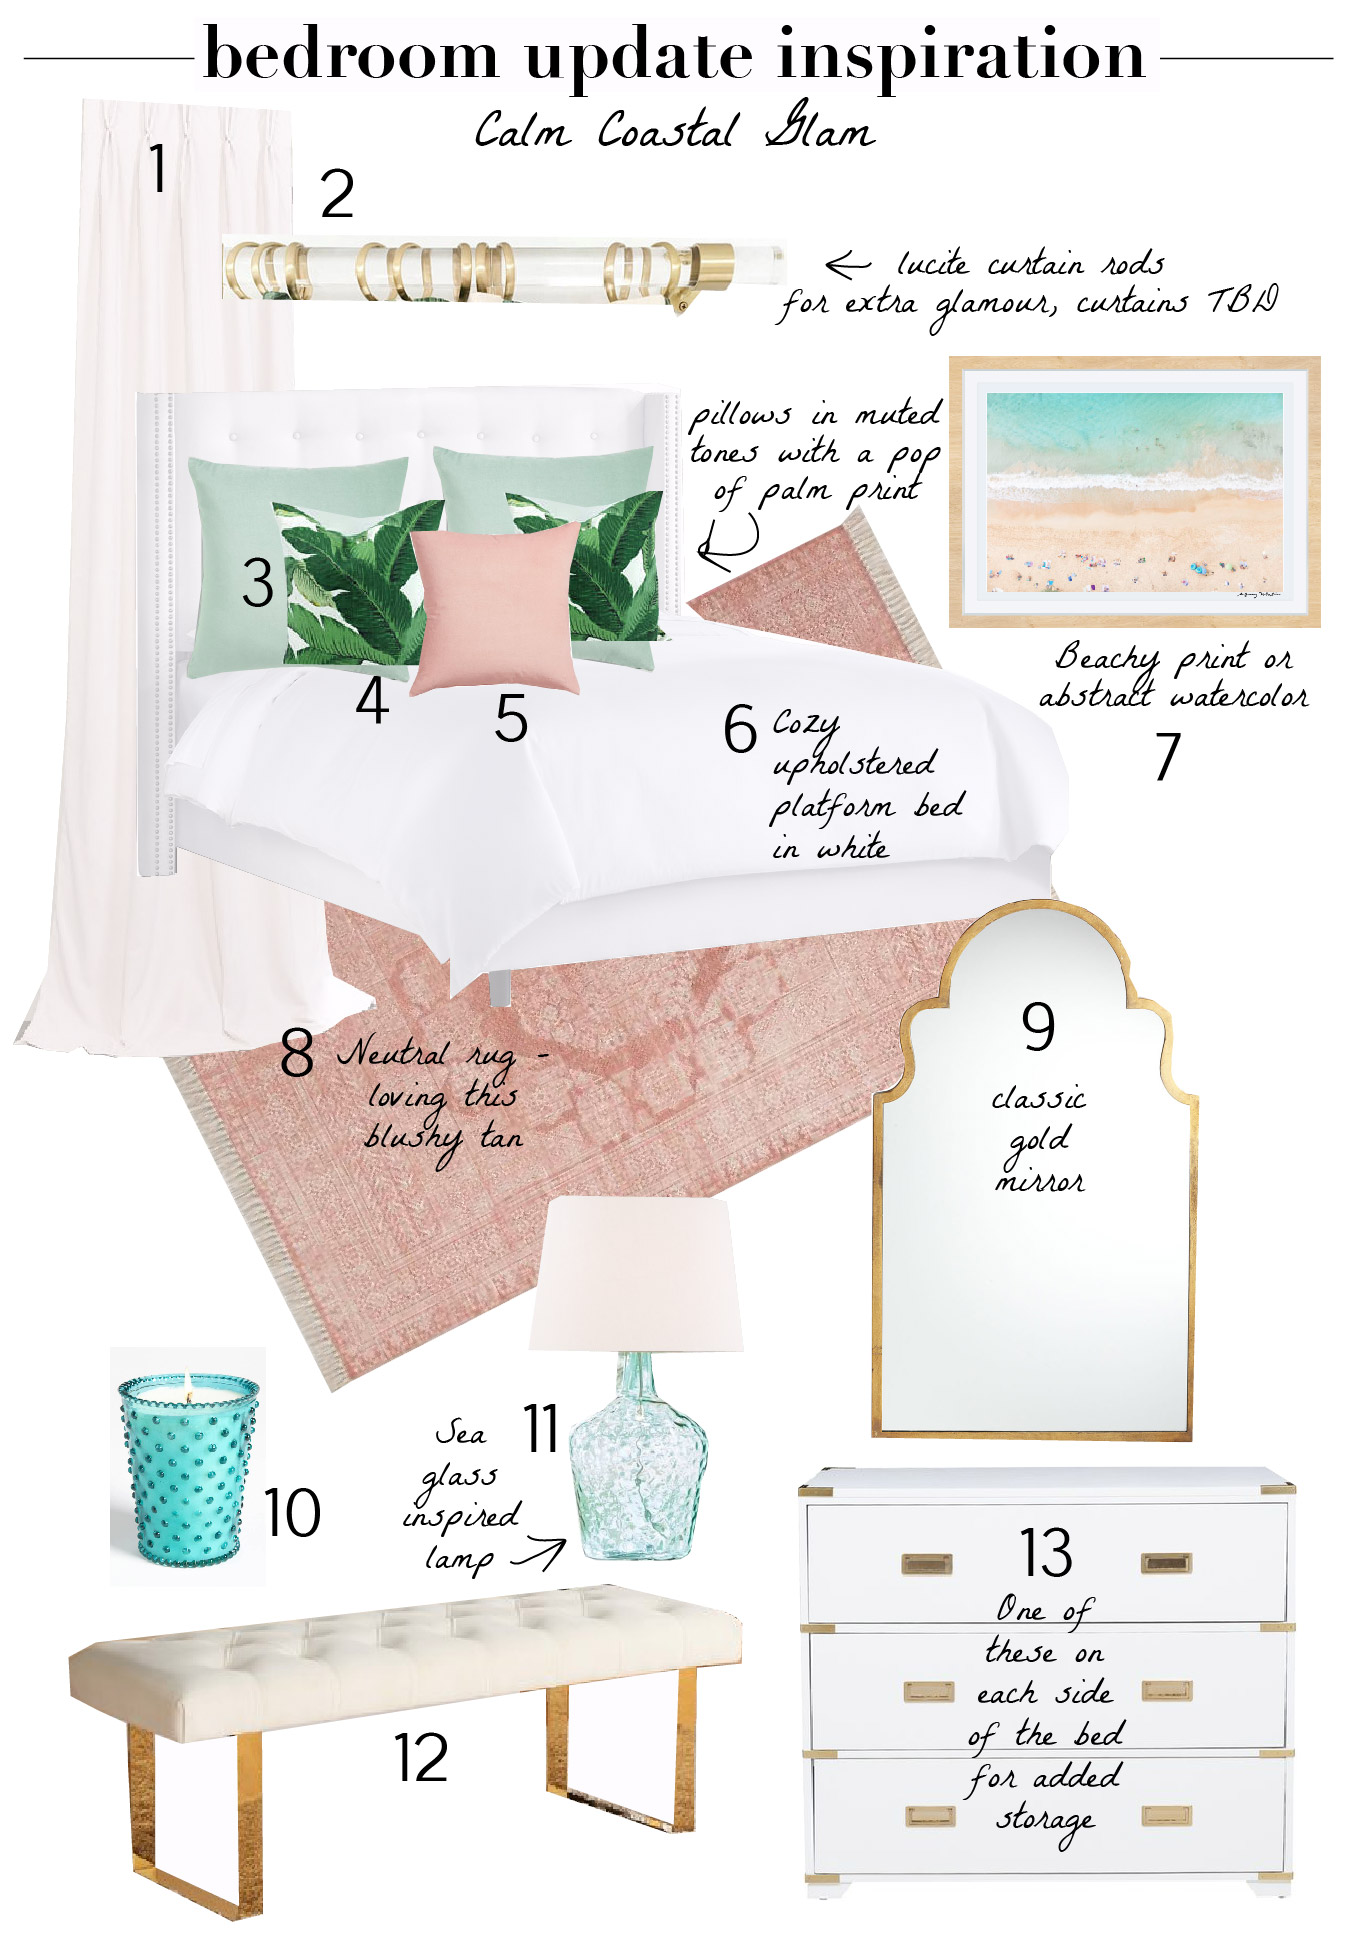 Shopping-Bedroom Update Inspiration Calm Coastal Glam